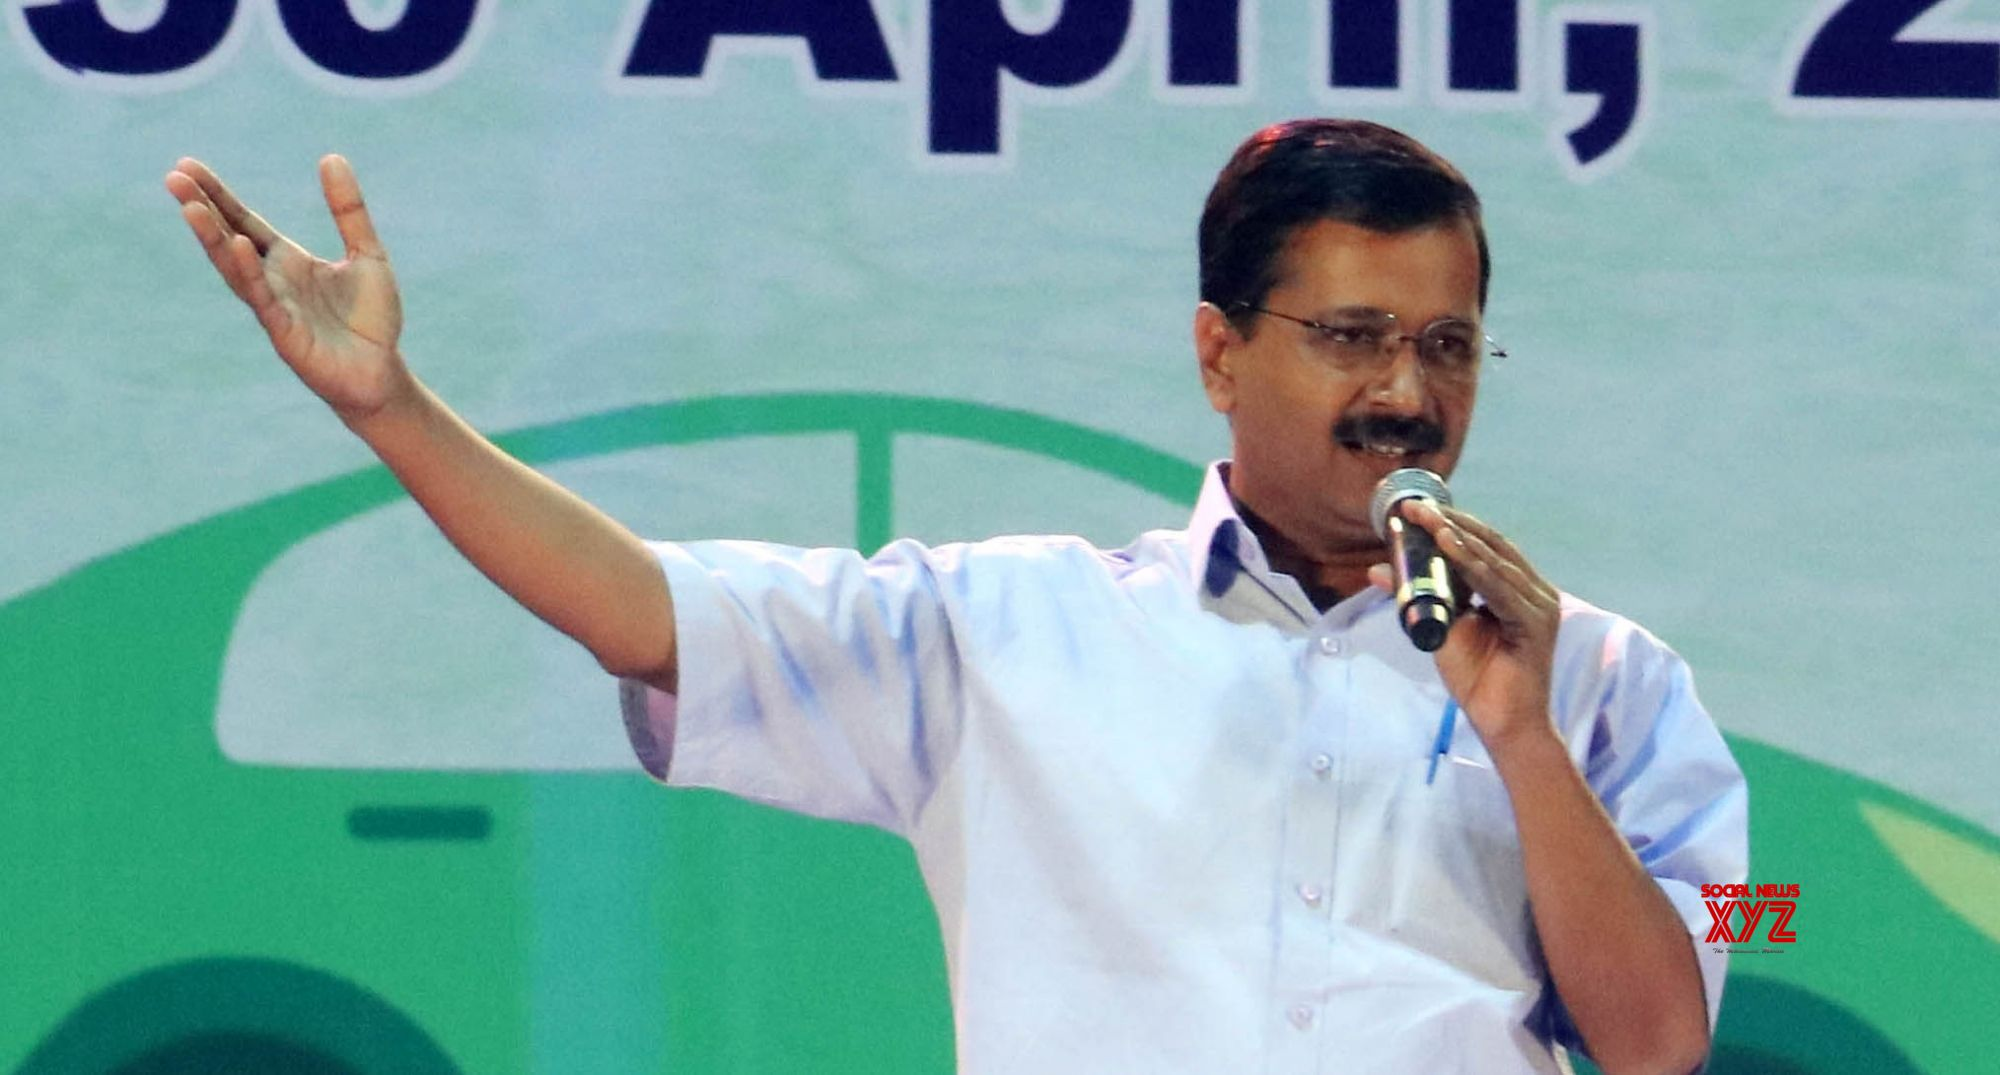 We'll provide free Covid vax if Centre doesn't: Kejriwal